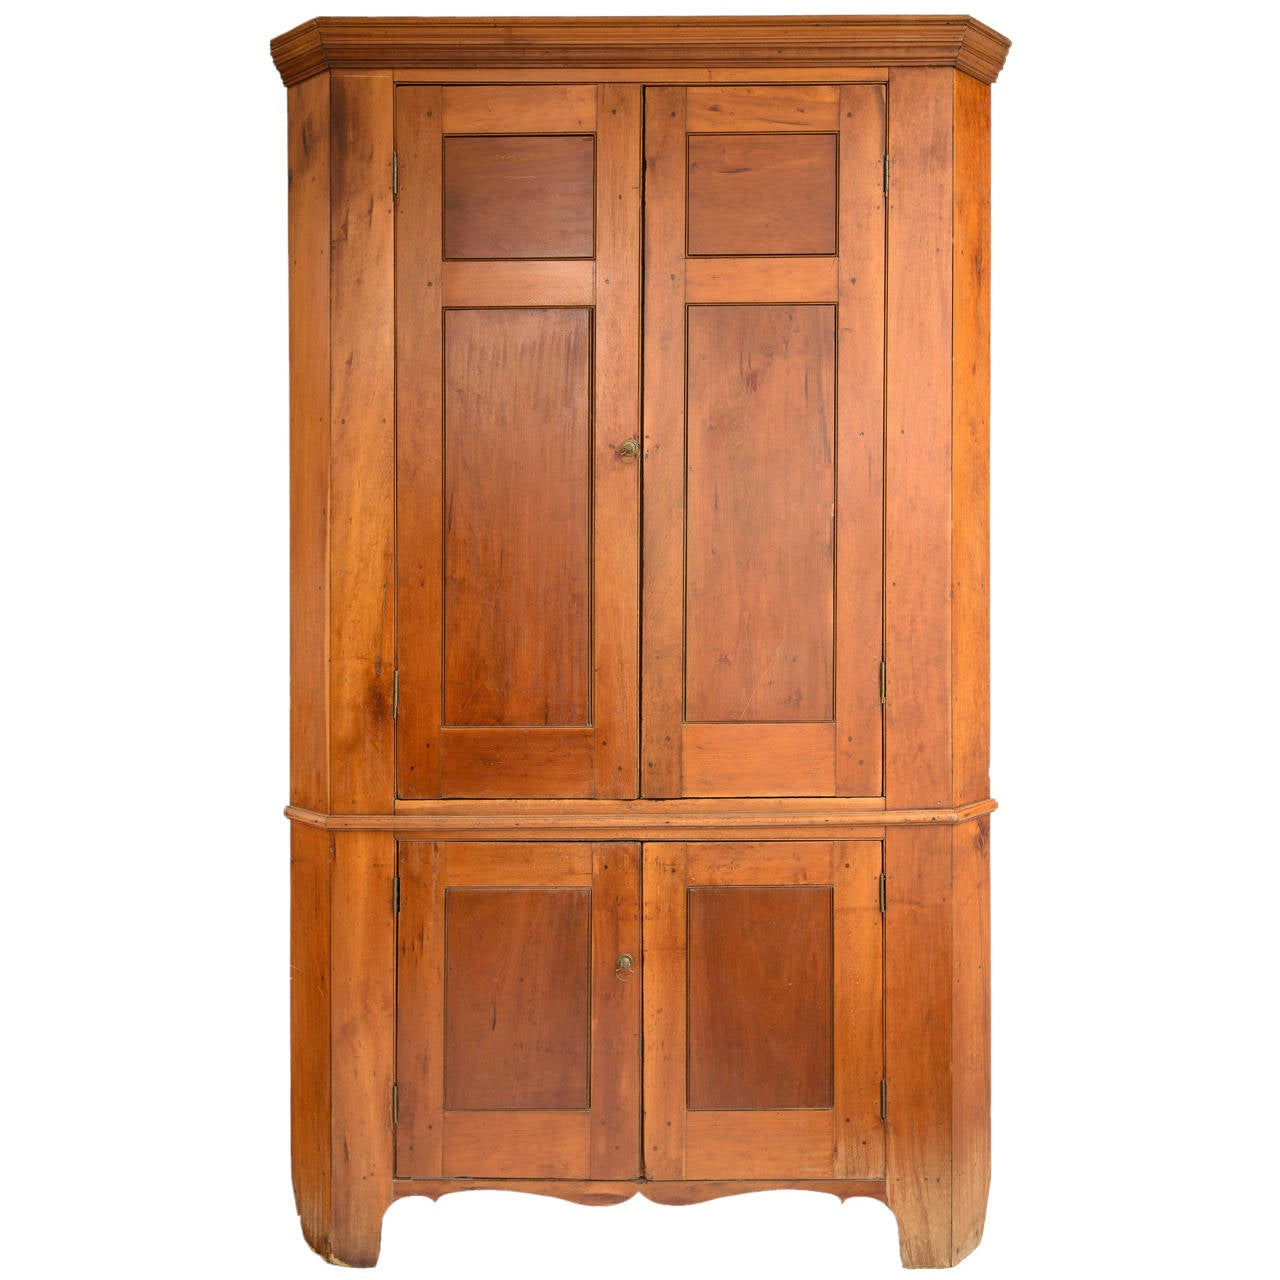 19th century american corner cupboard for sale at 1stdibs